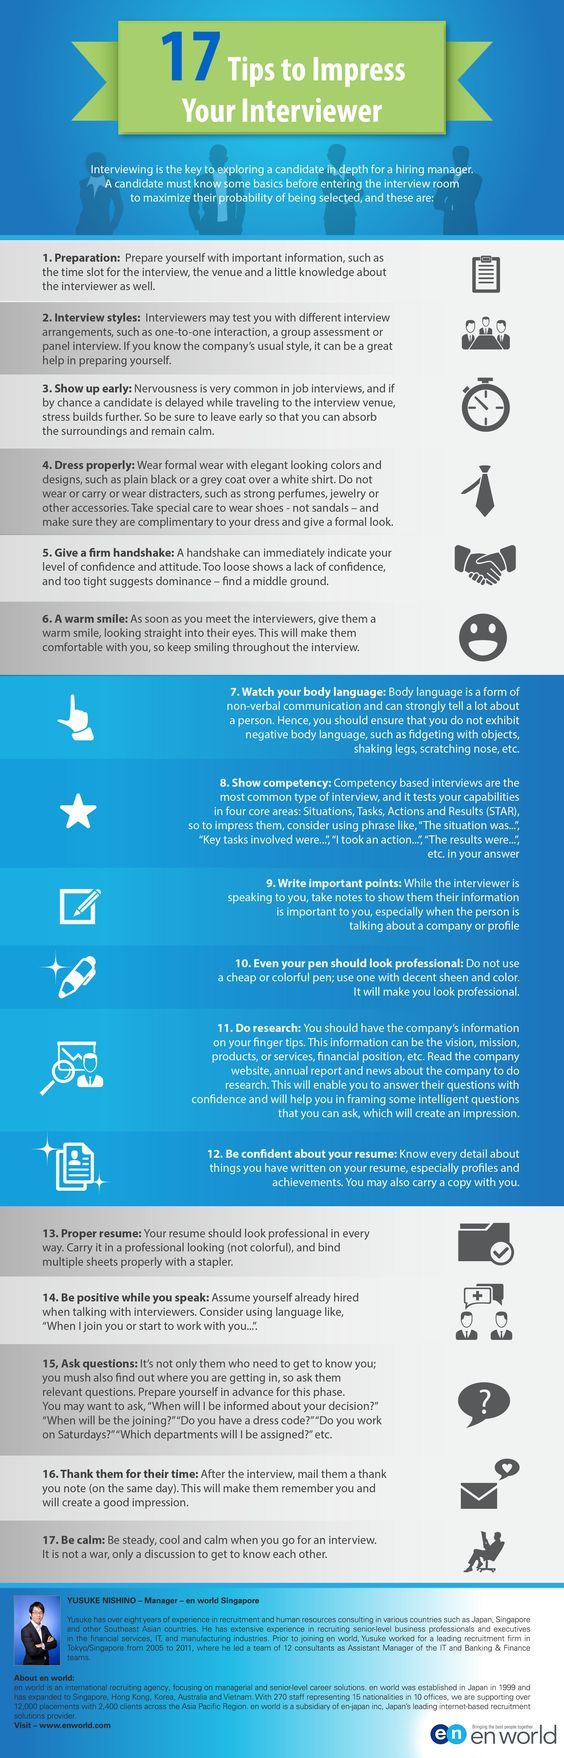 tips to impressing your interviewer infographic goodwill is 17 tips to impressing your interviewer infographic goodwill is here to help you impress your